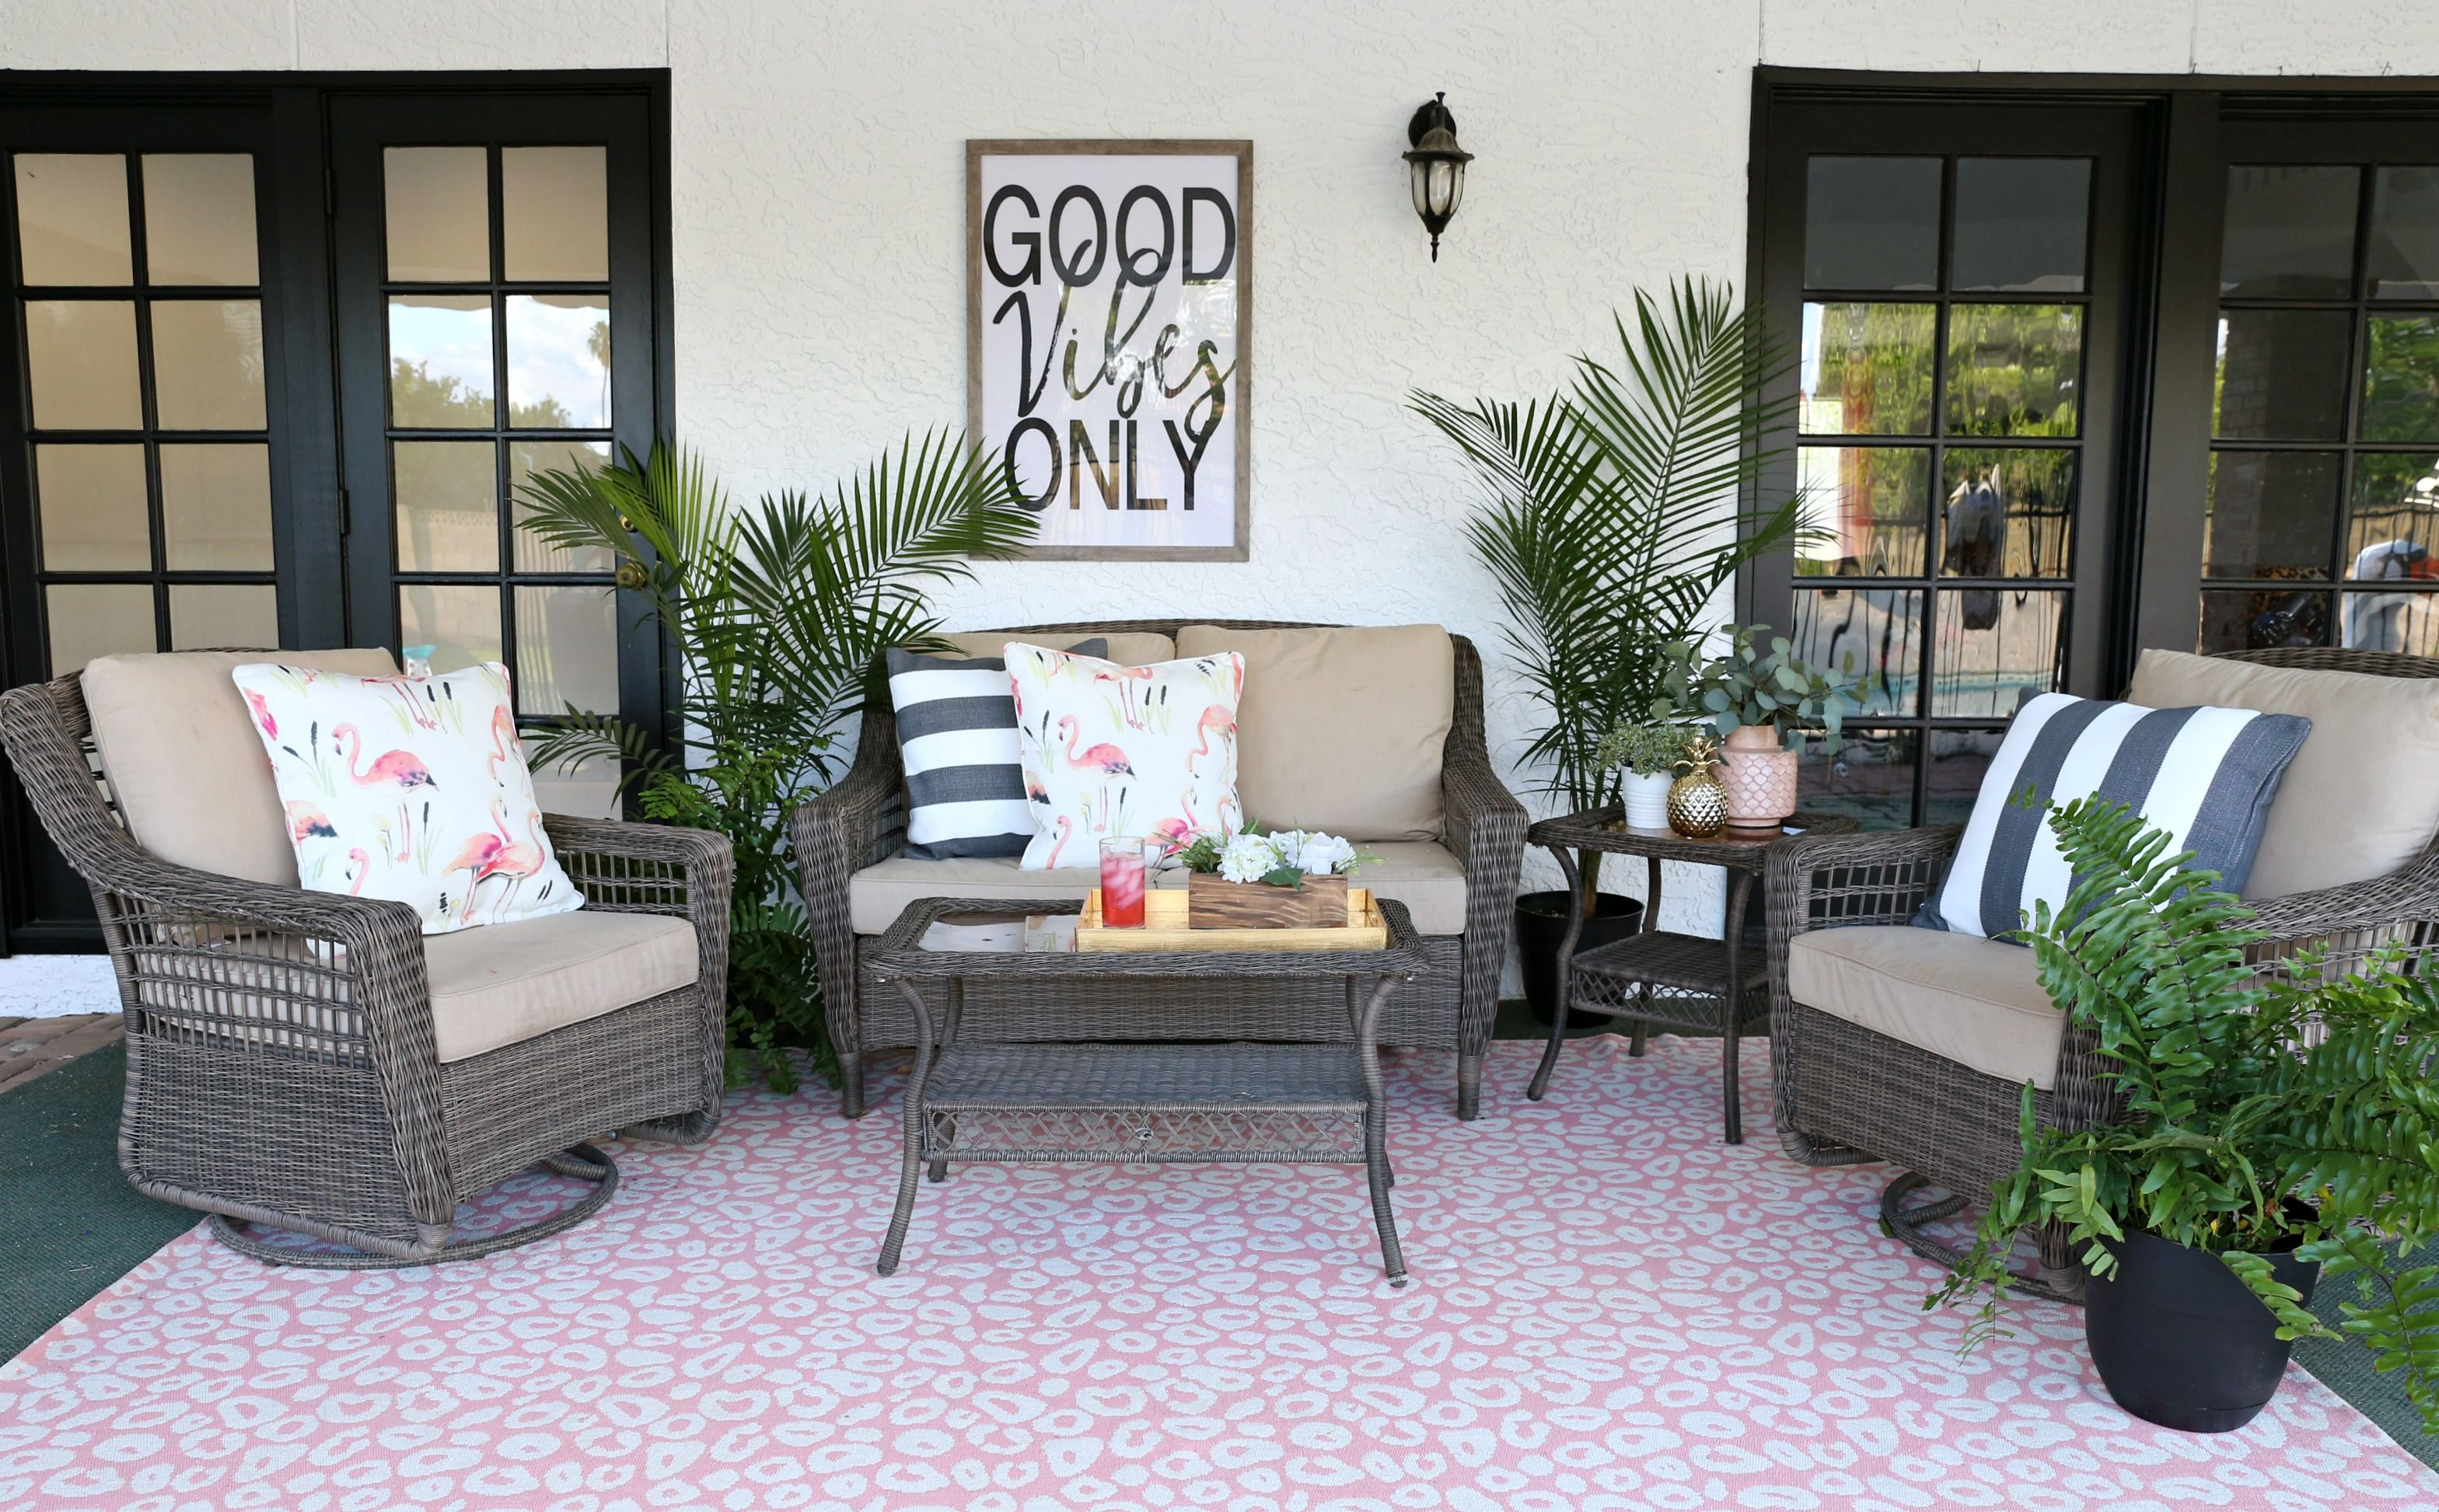 Palm Springs Inspired Patio Decor Classy Clutter Diy Patio Decor Outdoor Patio Decor Patio Decor